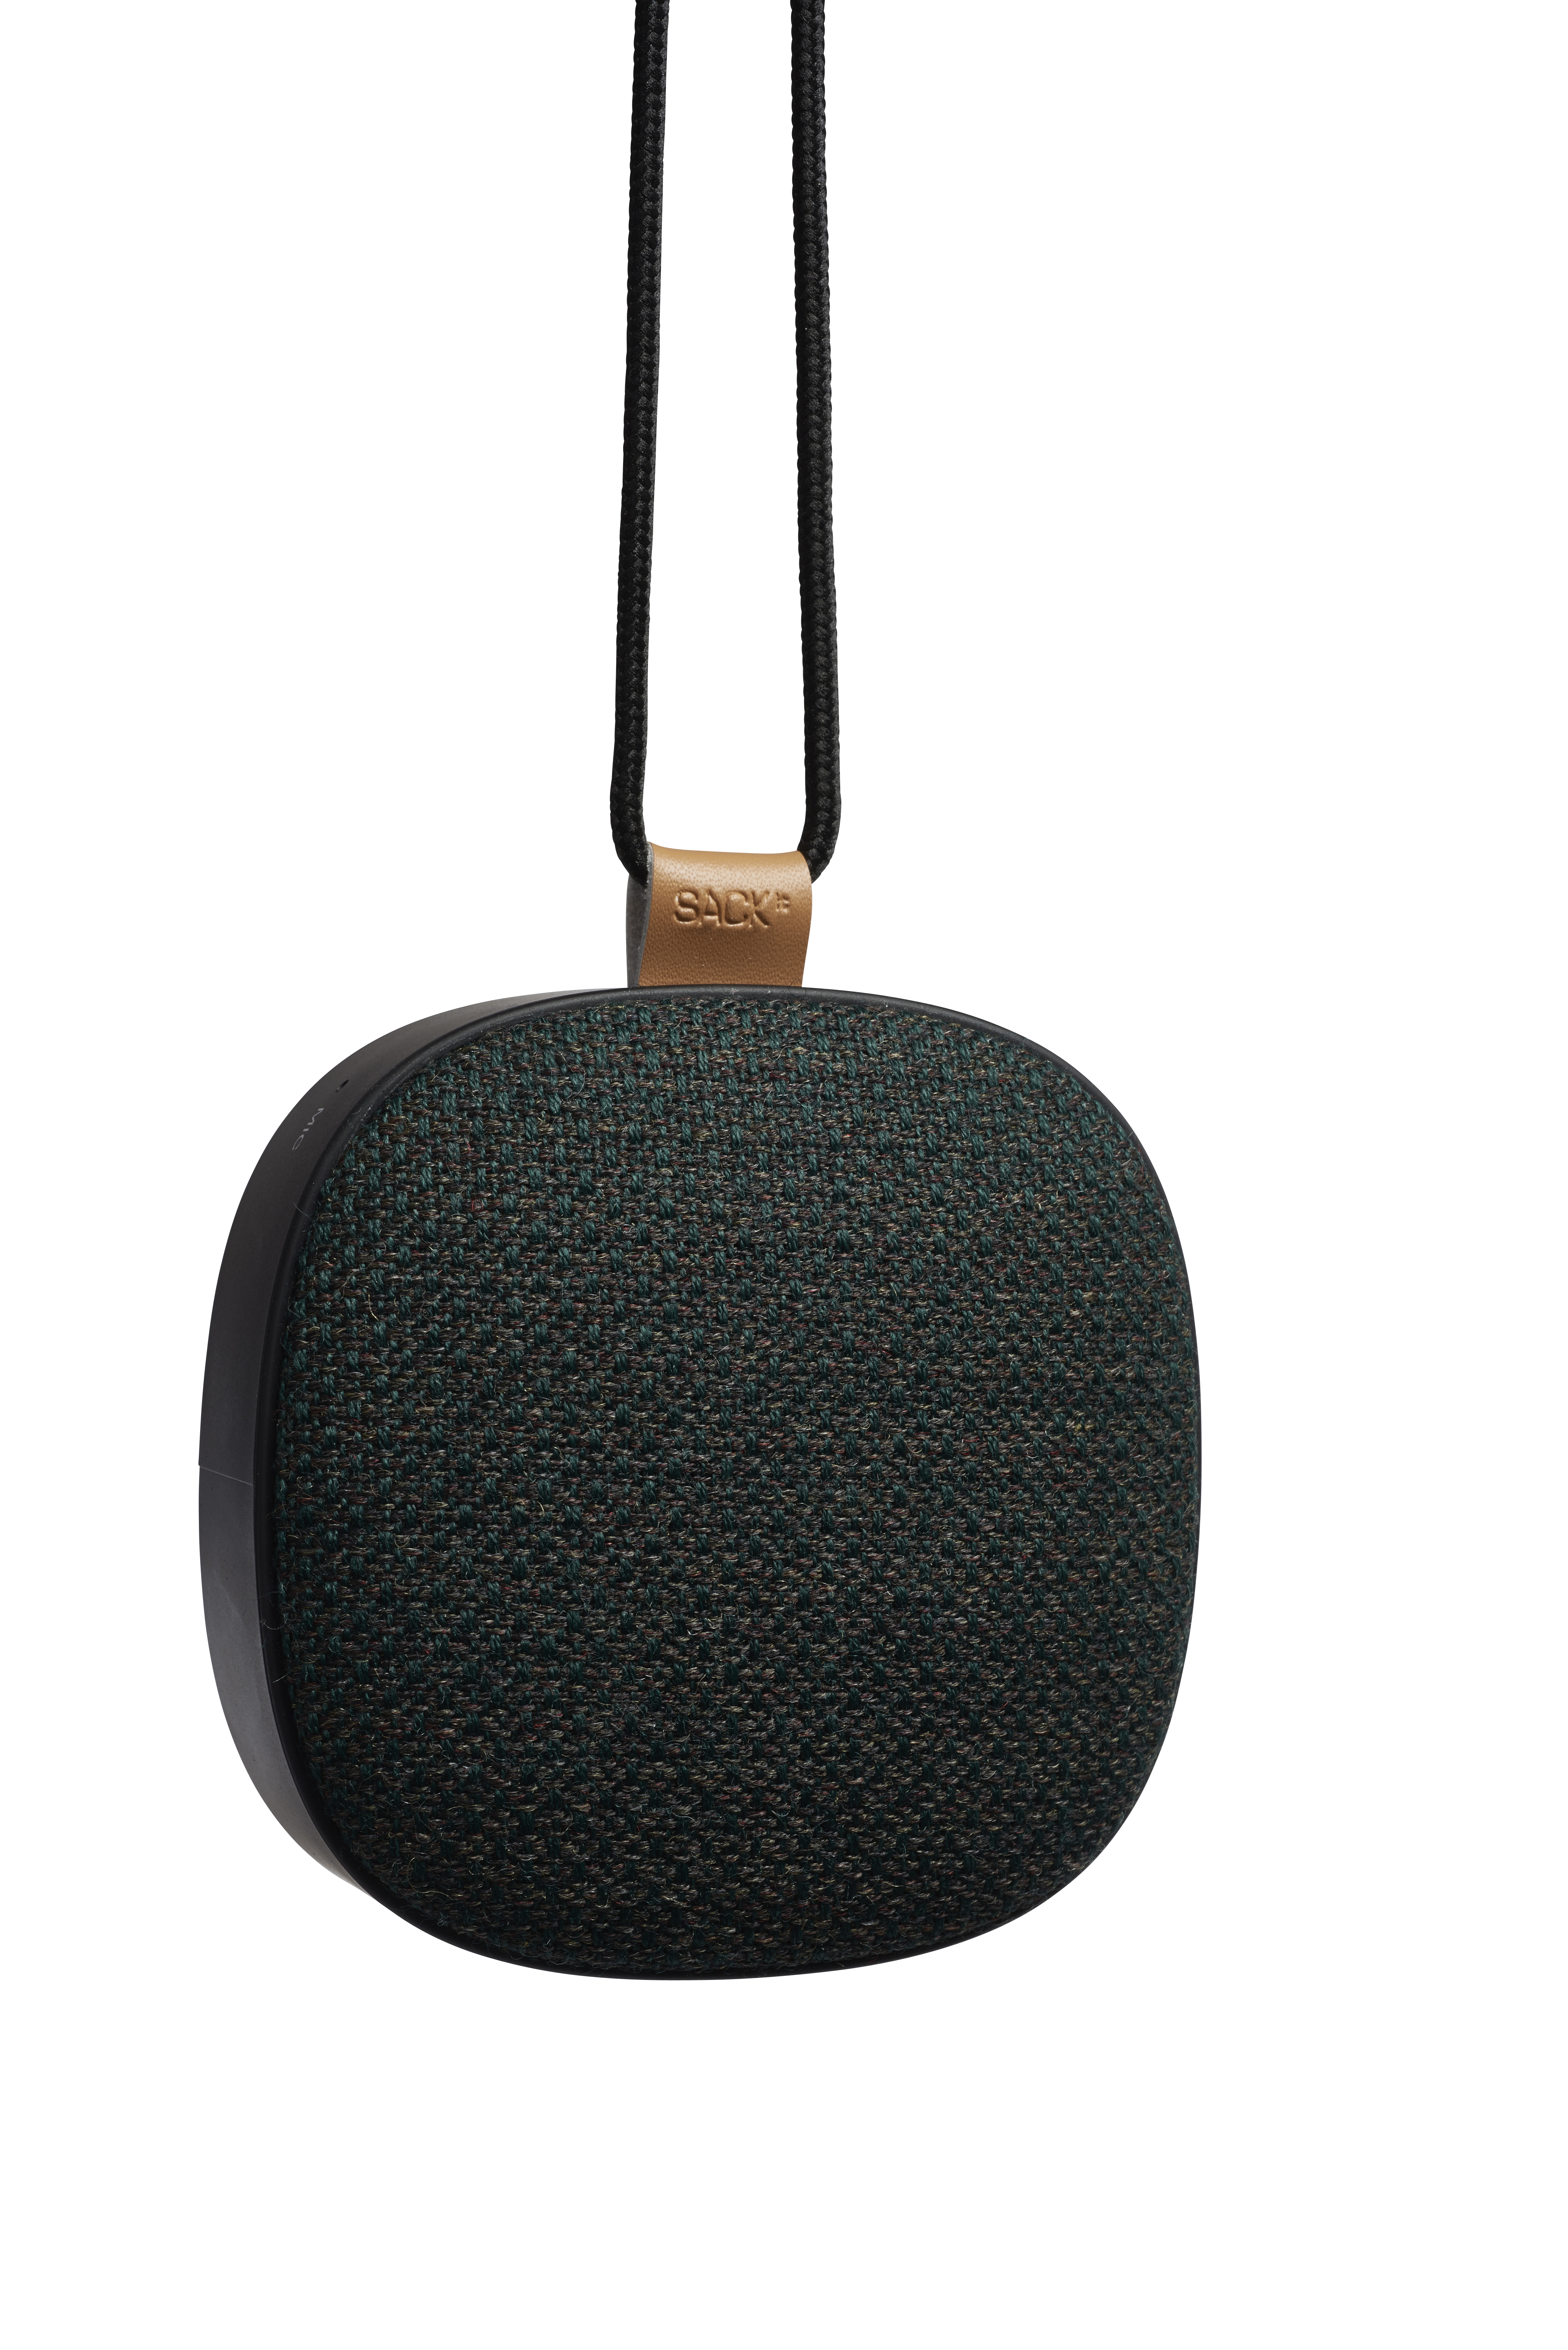  Sackit WOOFit Go X Bluetooth speaker Forest